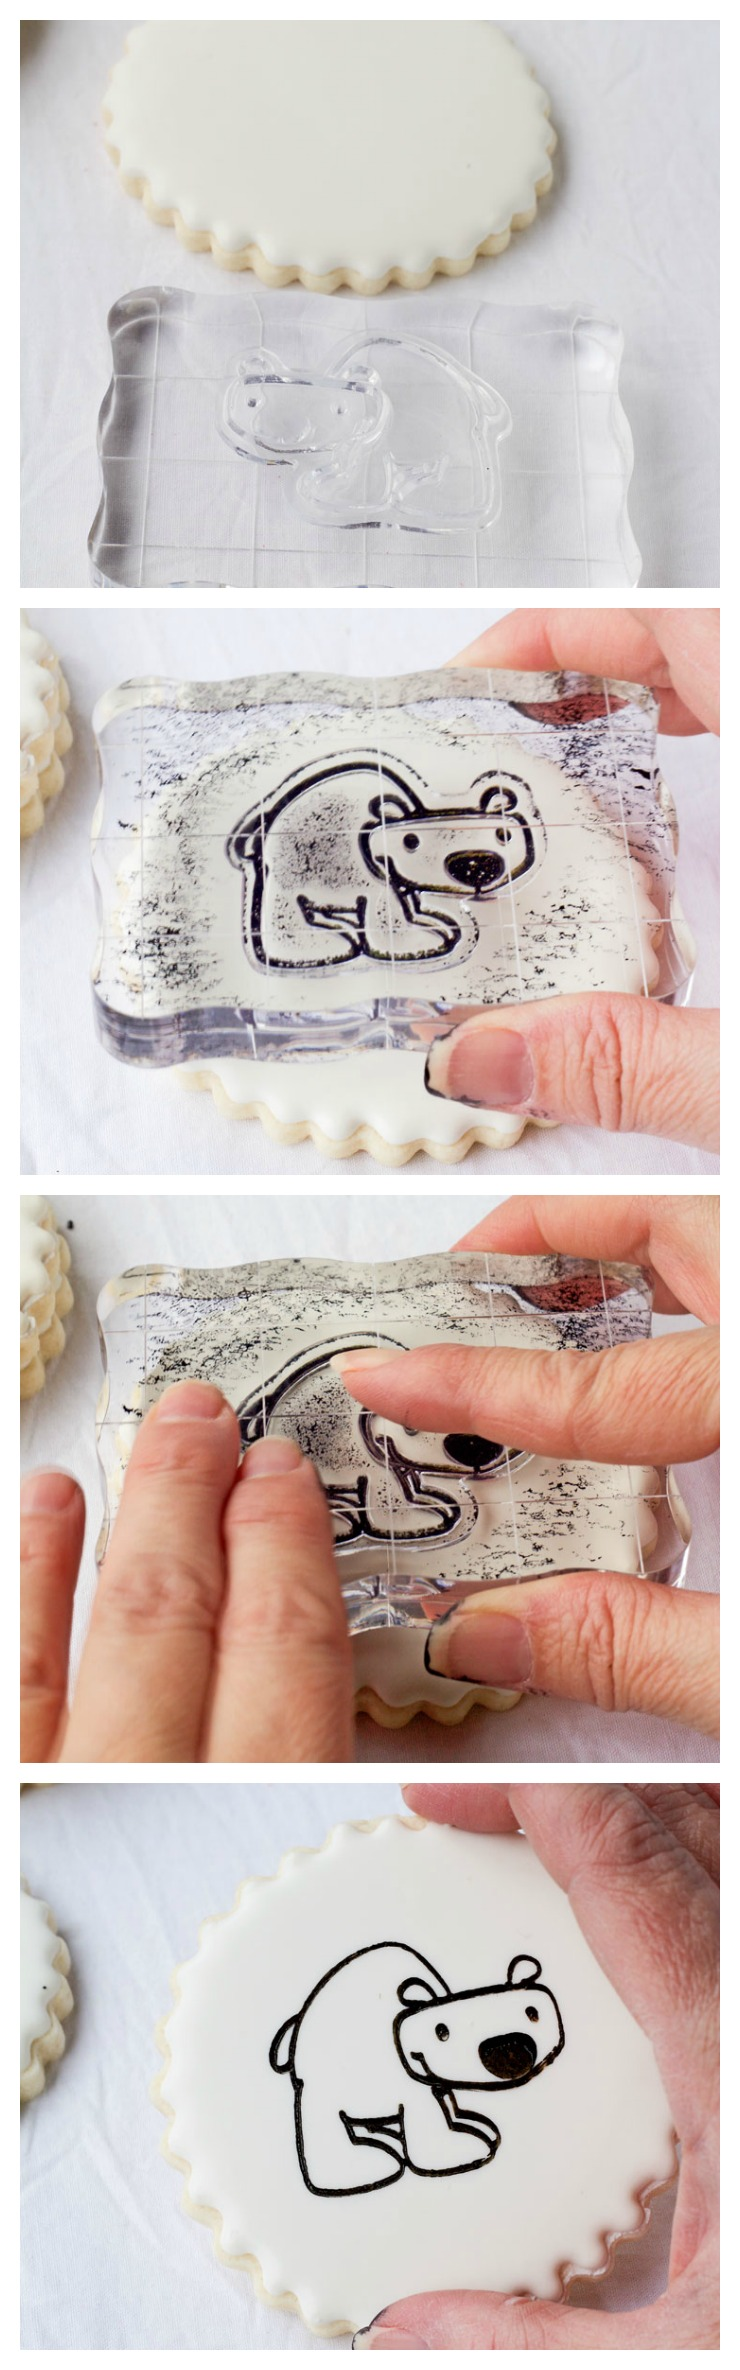 How to Stamp on a Cookie - Cookie Decorating just got EASY!! via www.thebearfootbaker.com